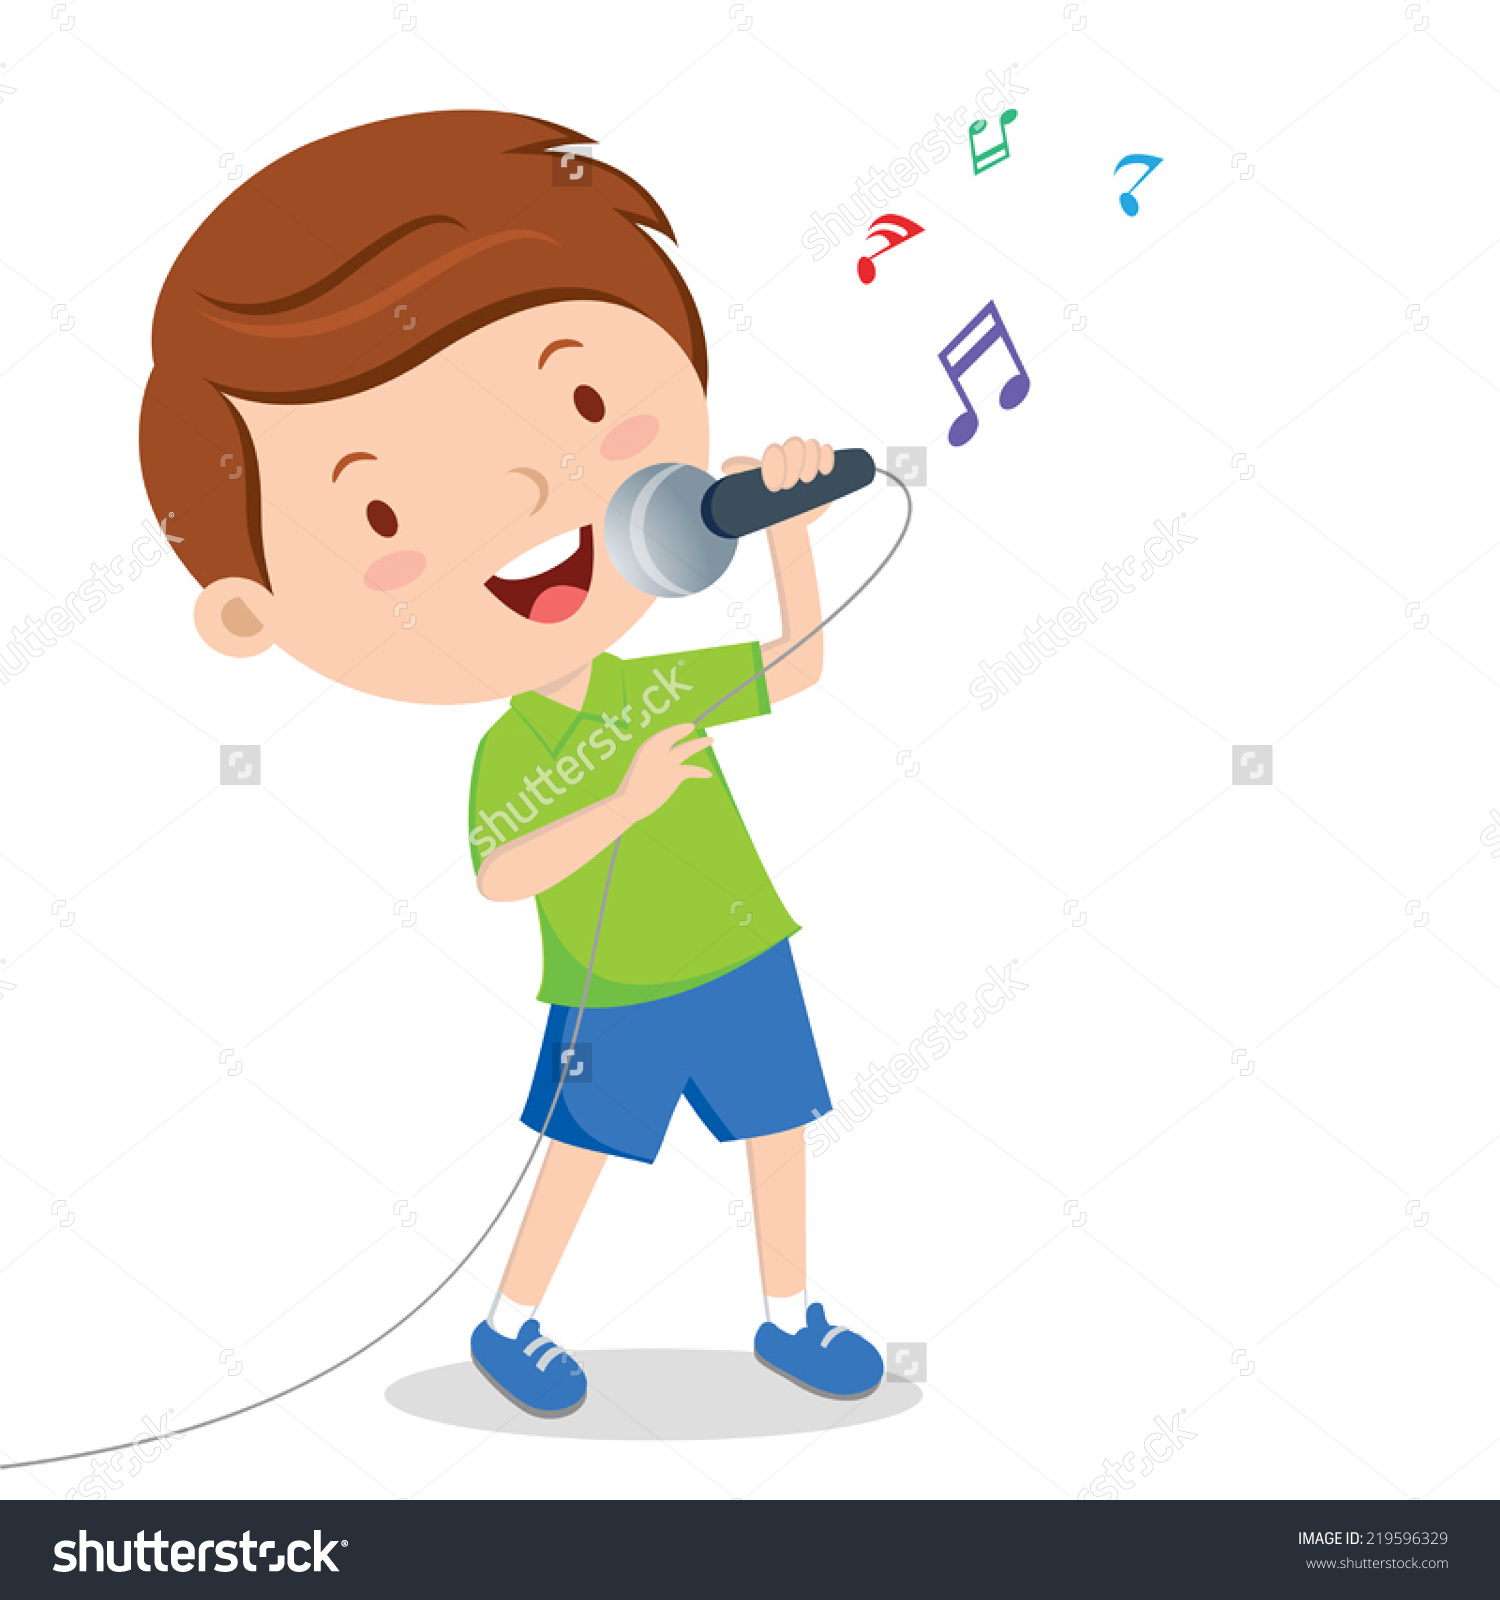 Clipart children sing together clip royalty free library Children Singing Clipart | Free download best Children Singing ... clip royalty free library